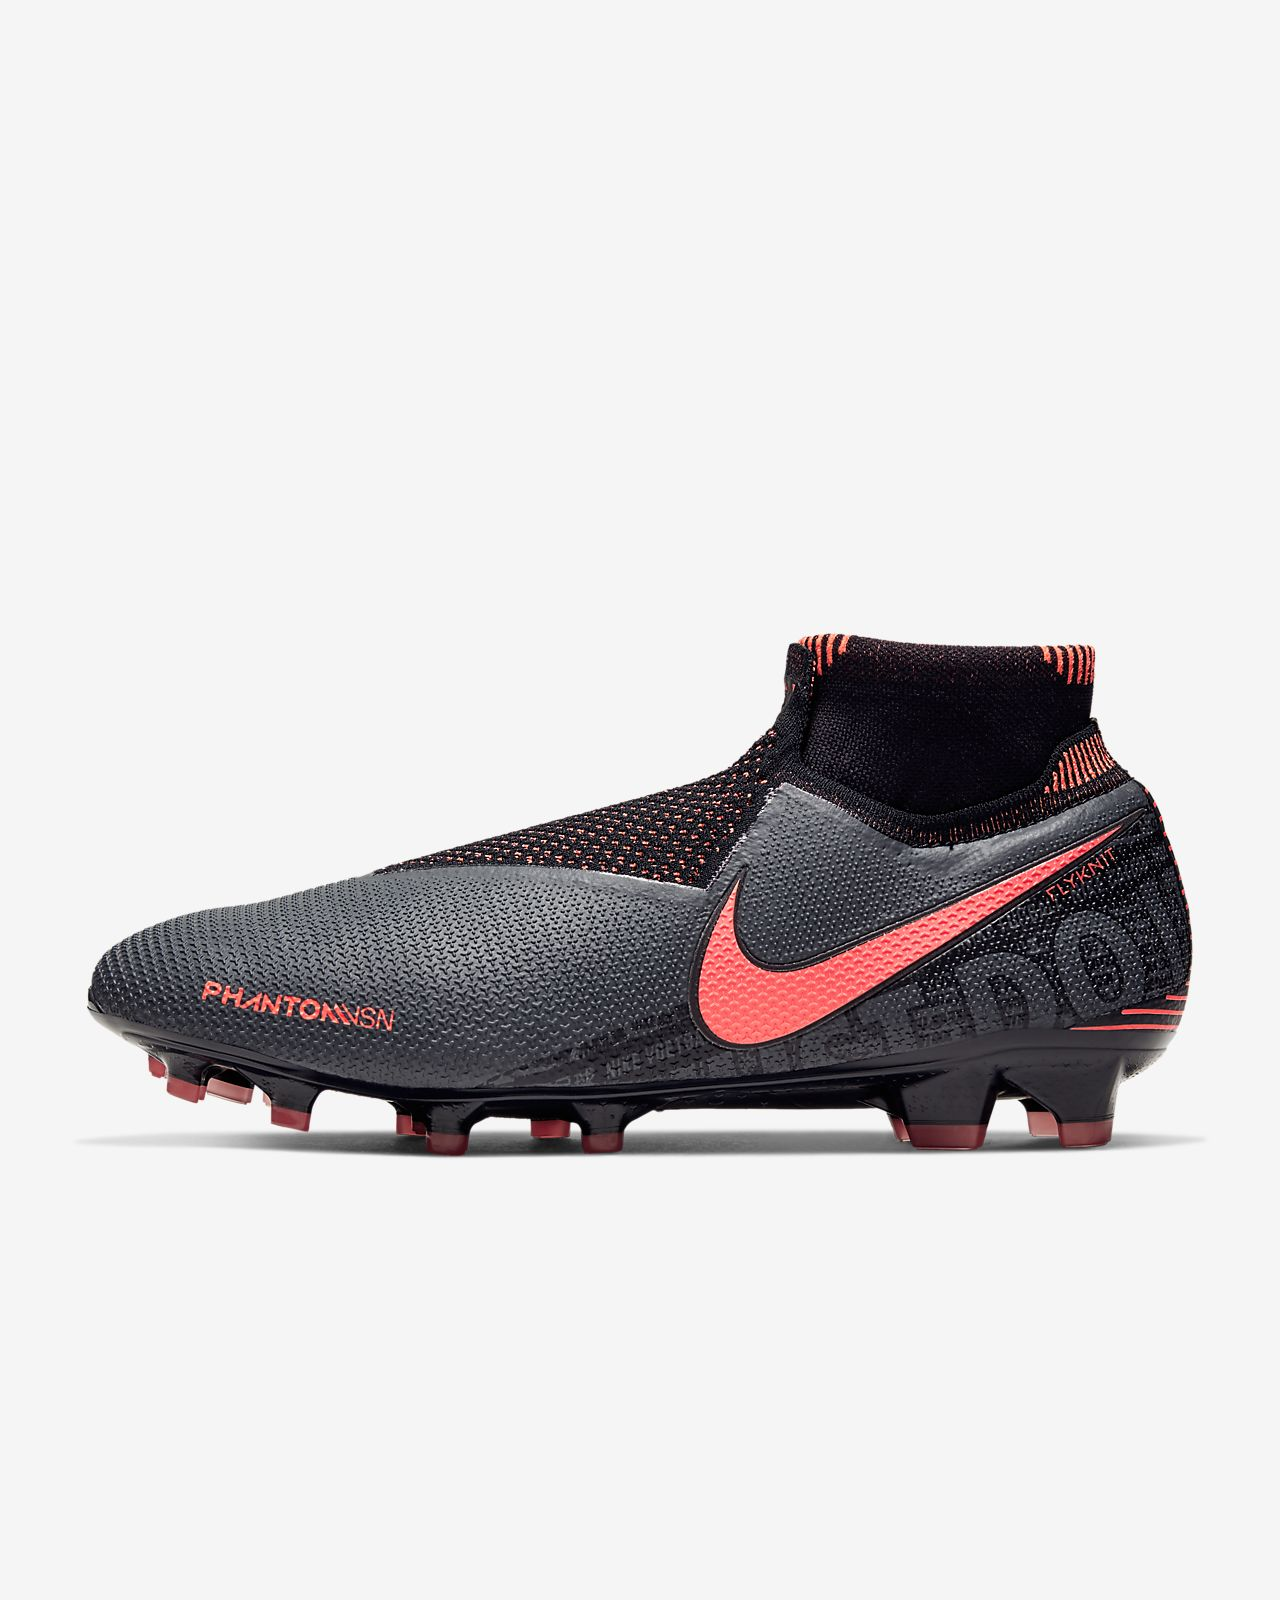 Nike Phantom Vision Elite Dynamic Fit FG Firm-Ground Soccer Cleat